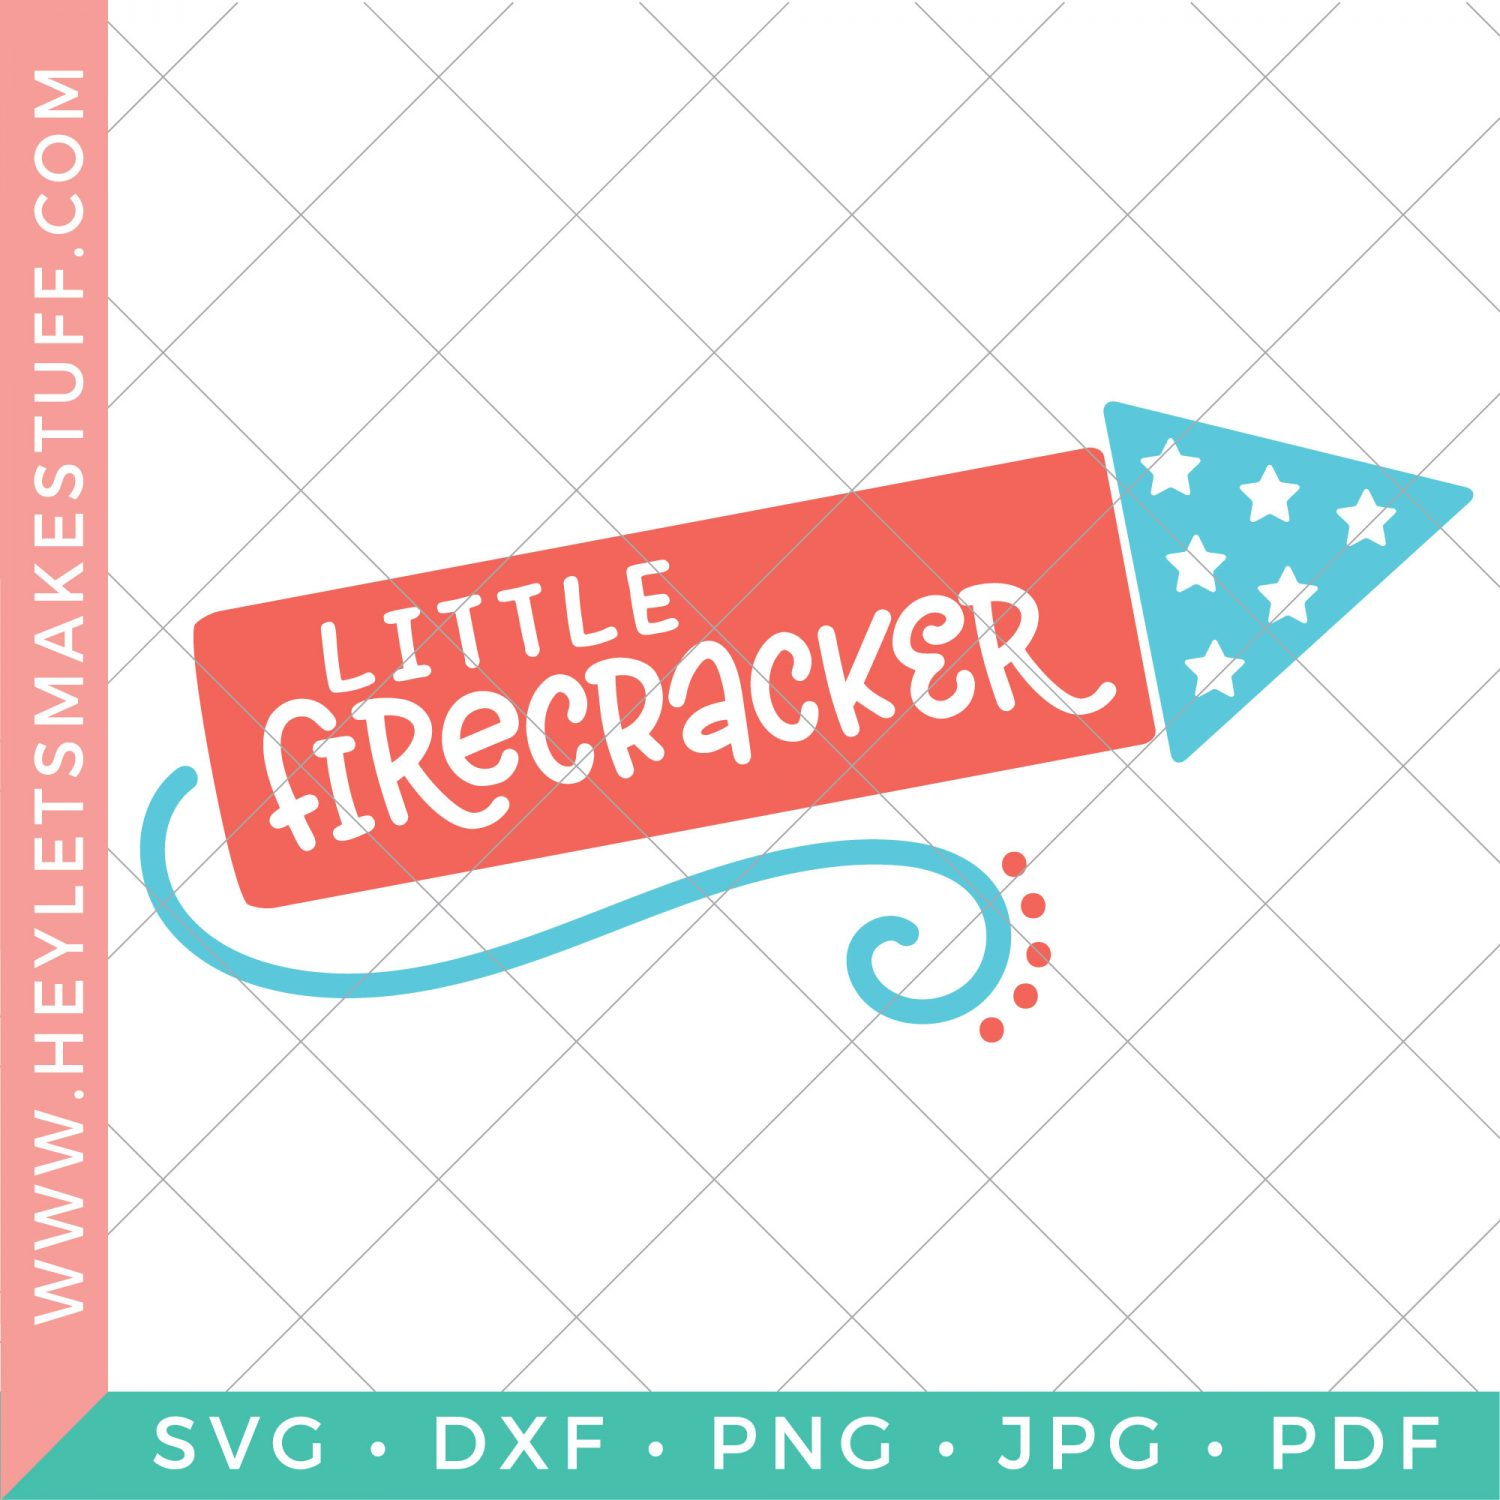 Little Firecracker SVG template